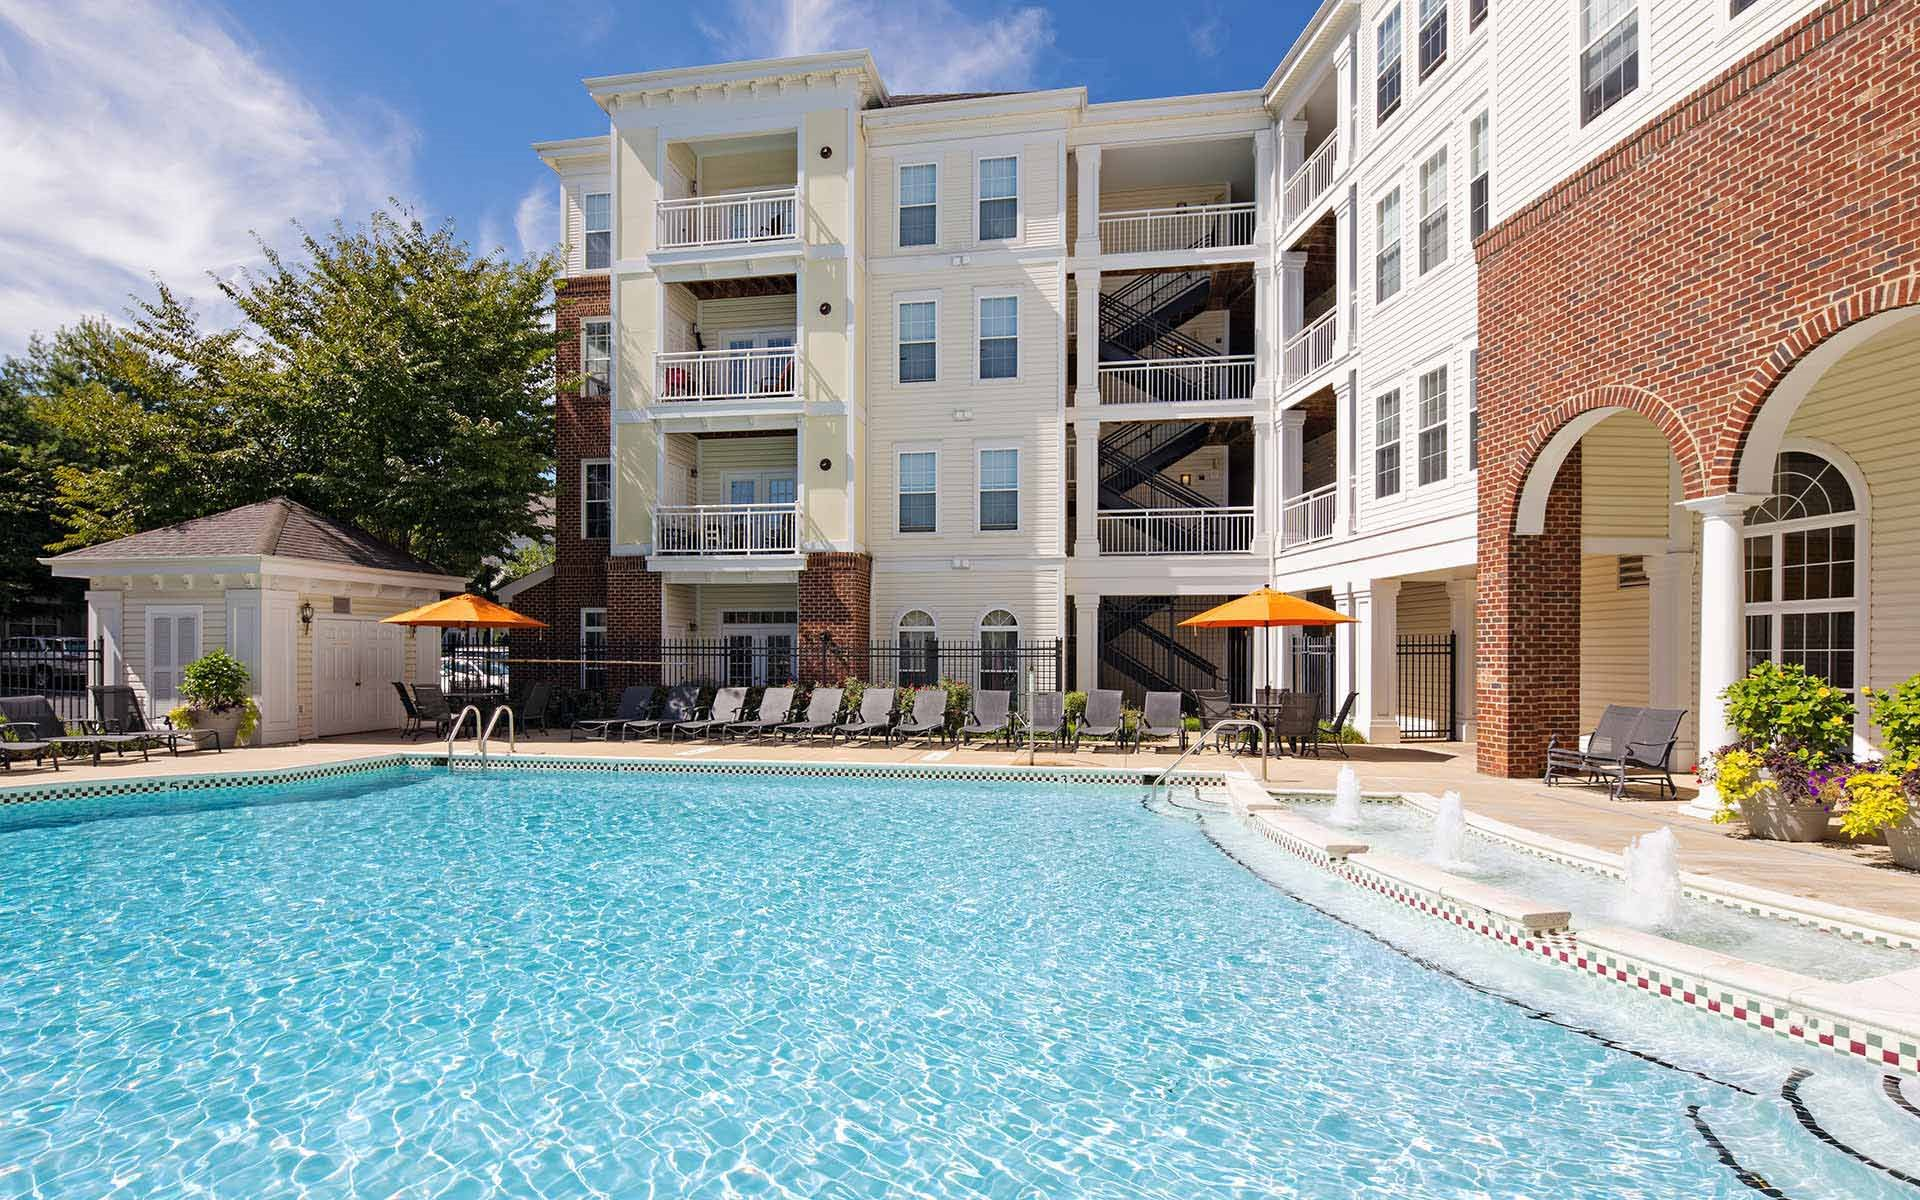 apartments in gaithersburg md